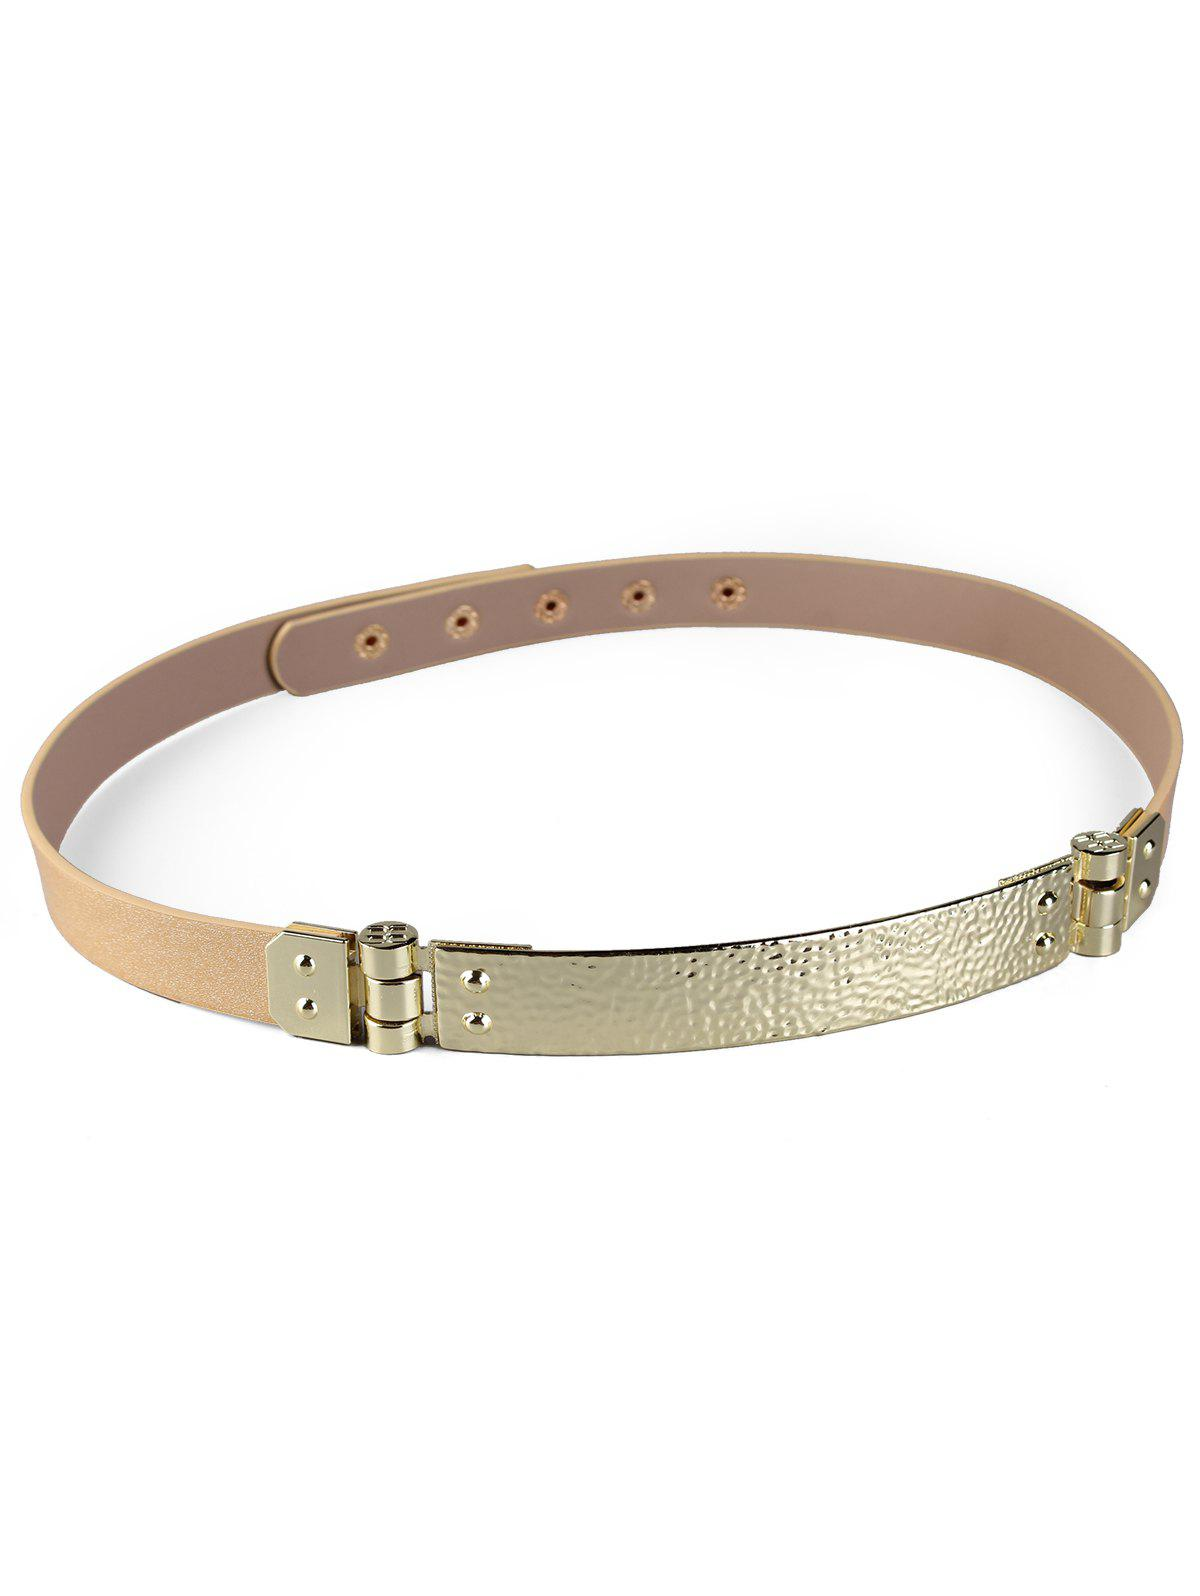 Unique Glitter Metal Bar Artificial Leather Skinny Belt - APRICOT